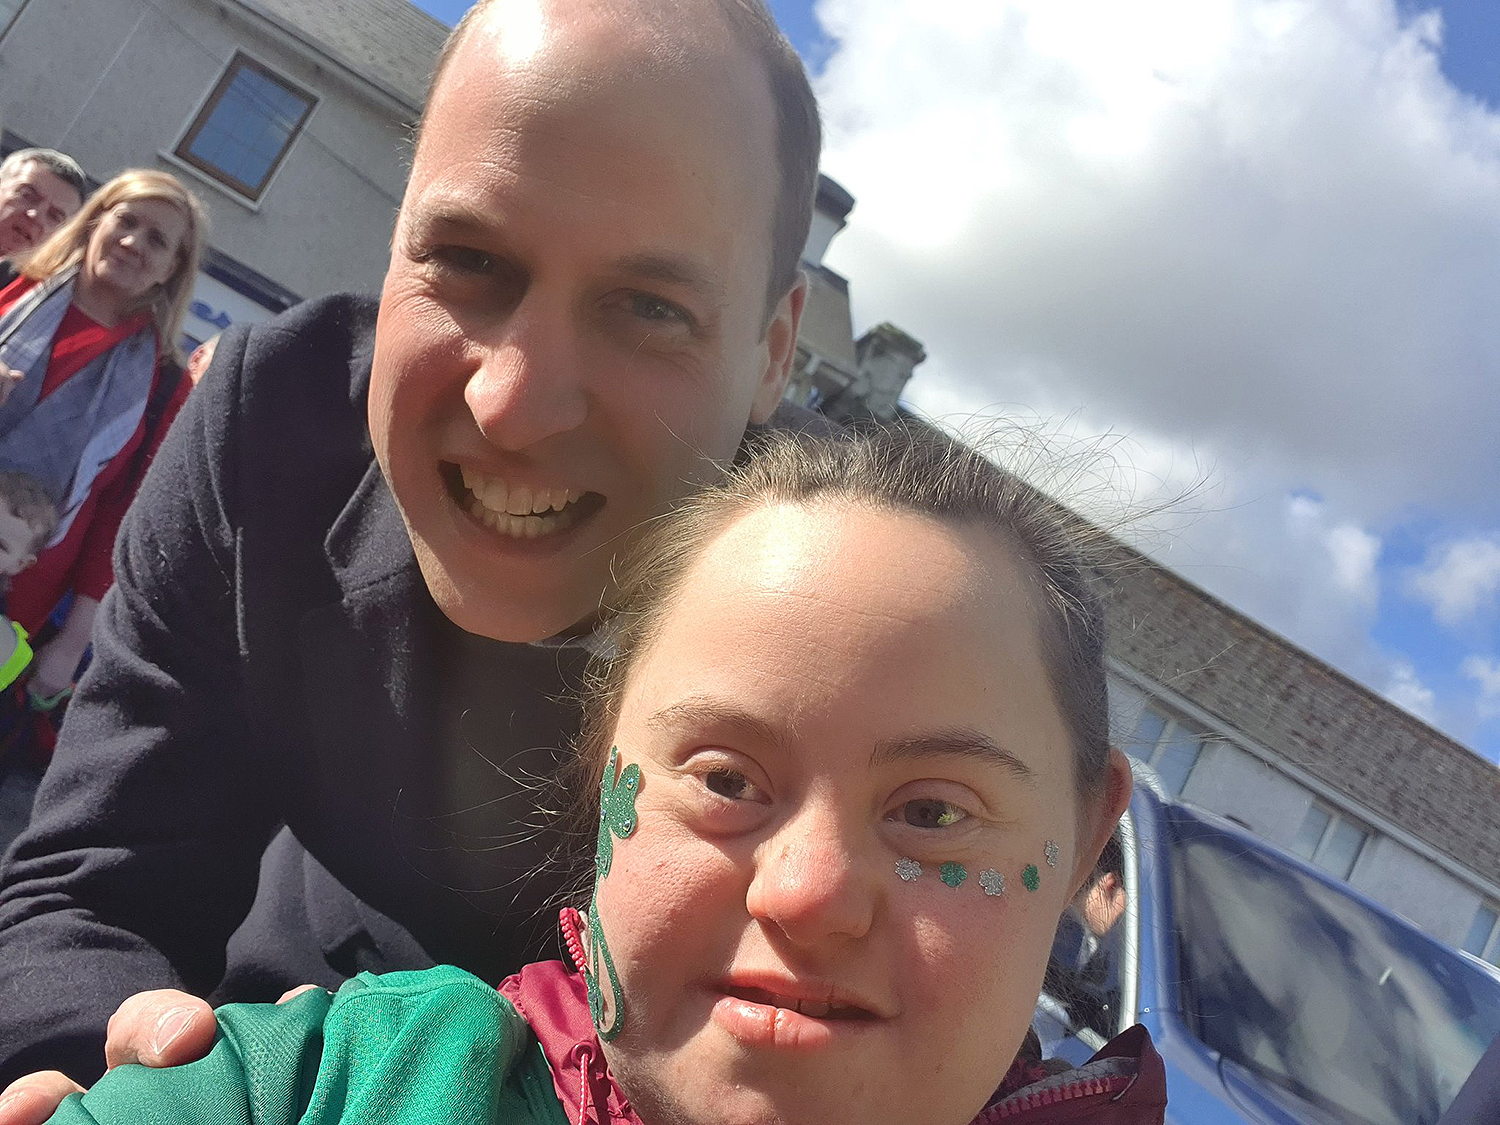 Prince William Breaks Protocol to Take Rare Selfie with Fan in Ireland — All About the Sweet Photo!